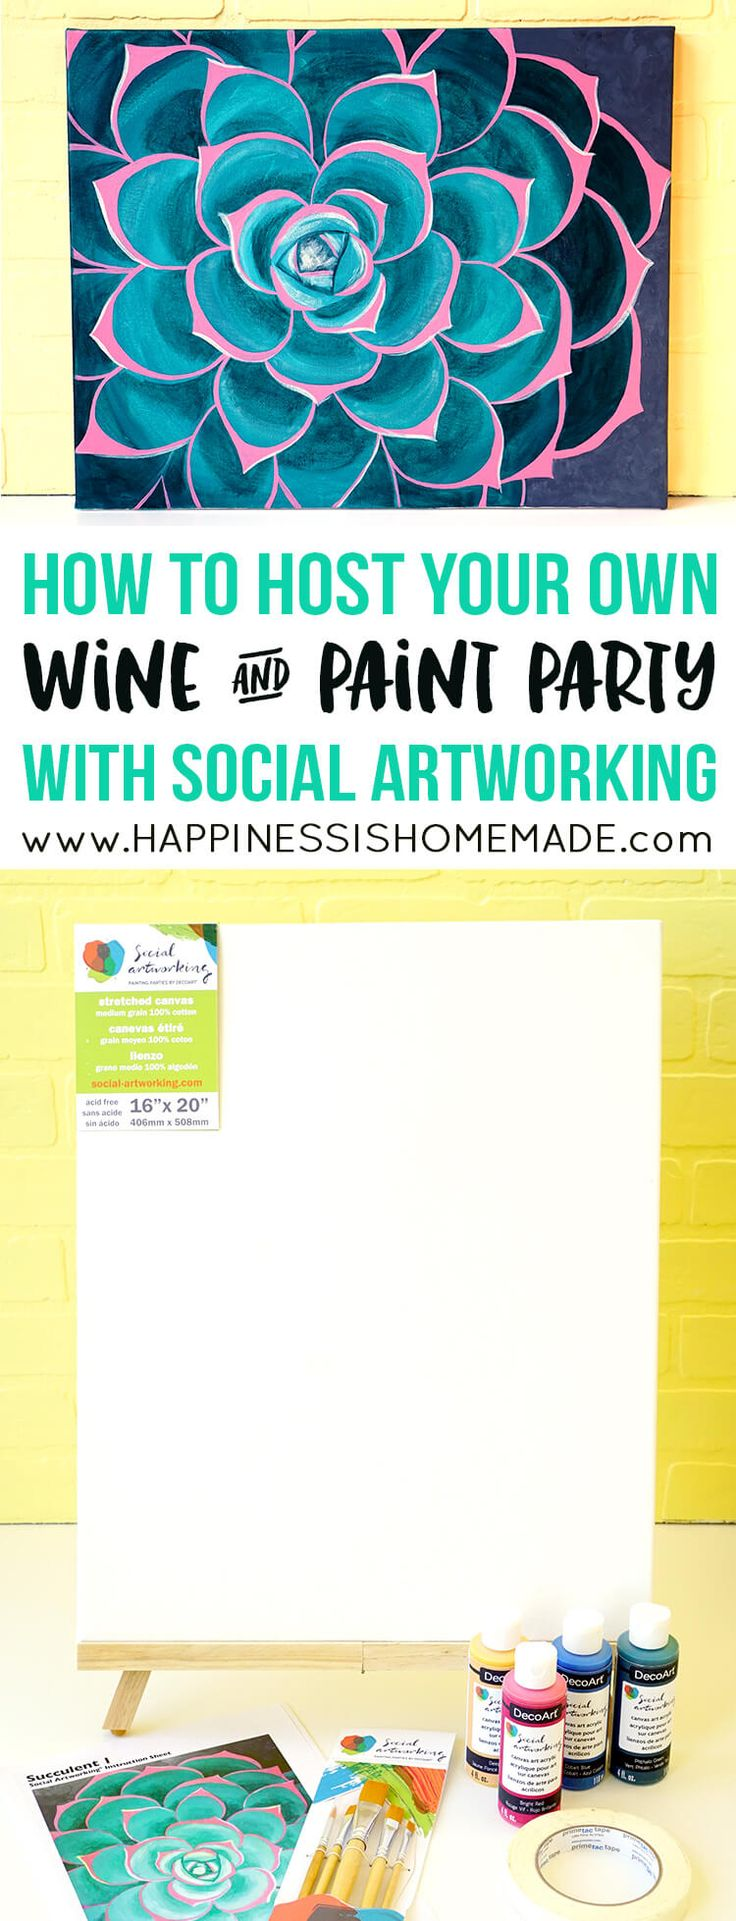 It's so much fun (and SO easy!) to host your own wine and painting party with Social Artworking! Anyone can paint with these easy to follow steps!